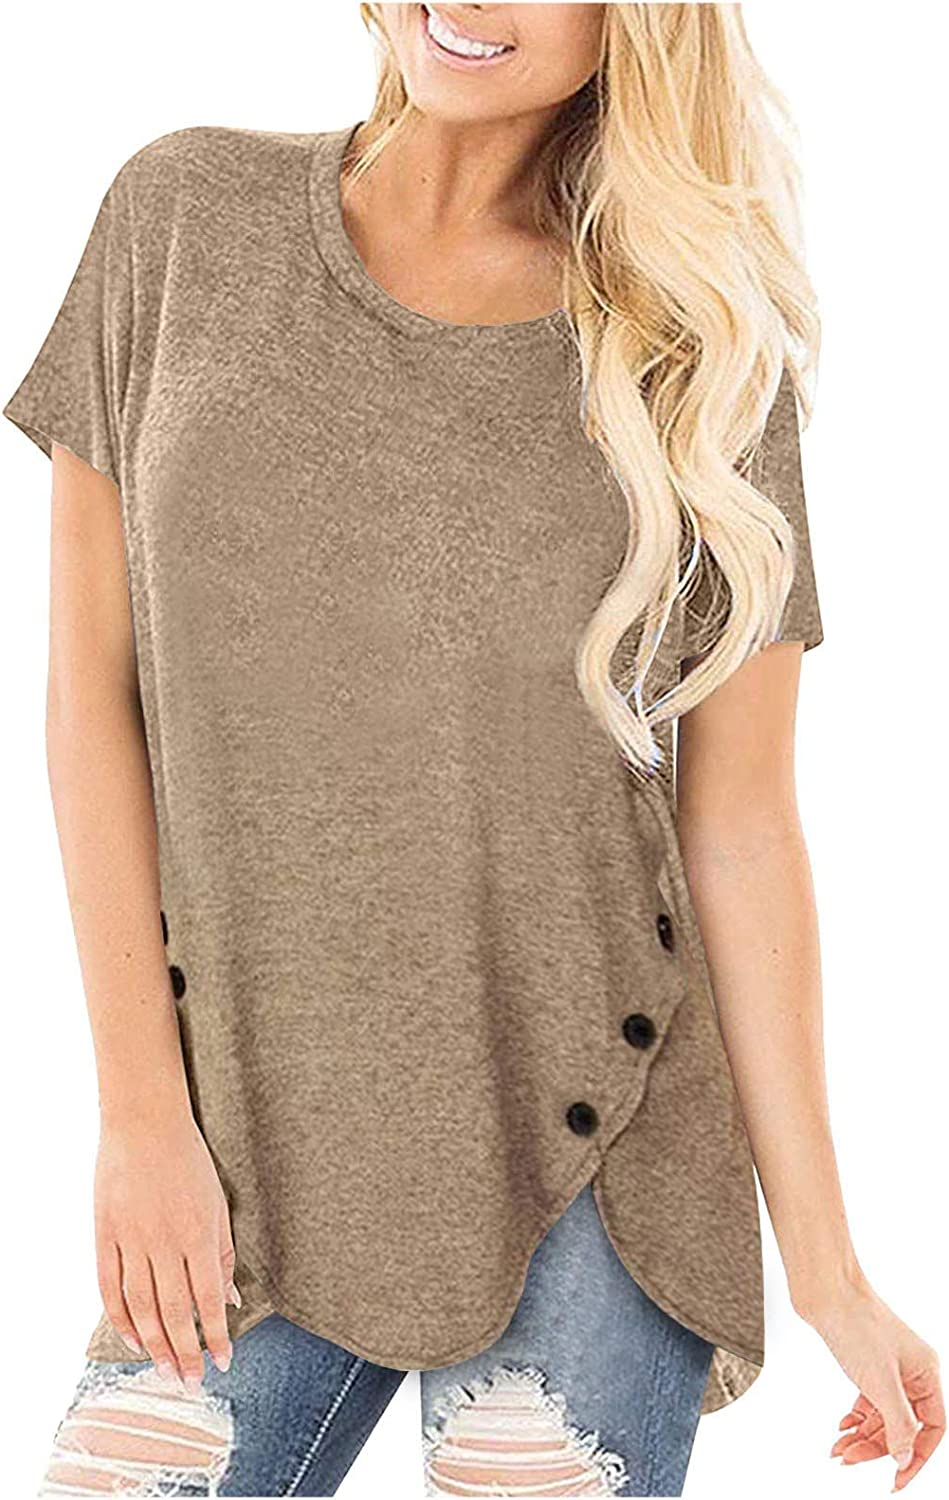 Women's Plus Size Comfortable Casual Tops Free Shipping Cheap Bargain Gift Tunic Neck Round Max 73% OFF Short